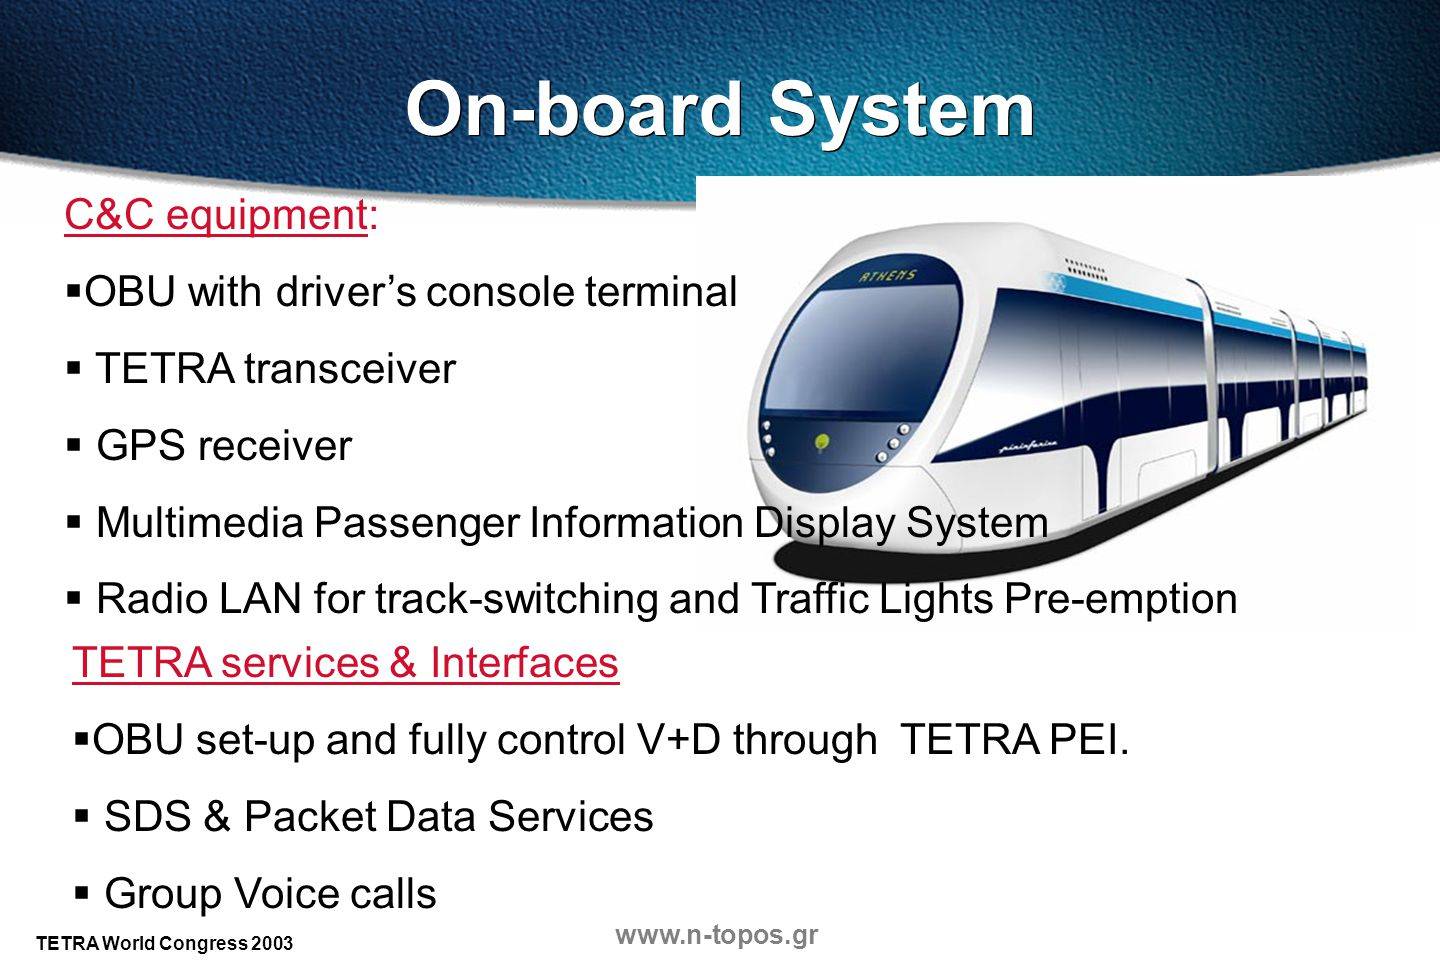 On-board System C&C equipment: OBU with driver's console terminal